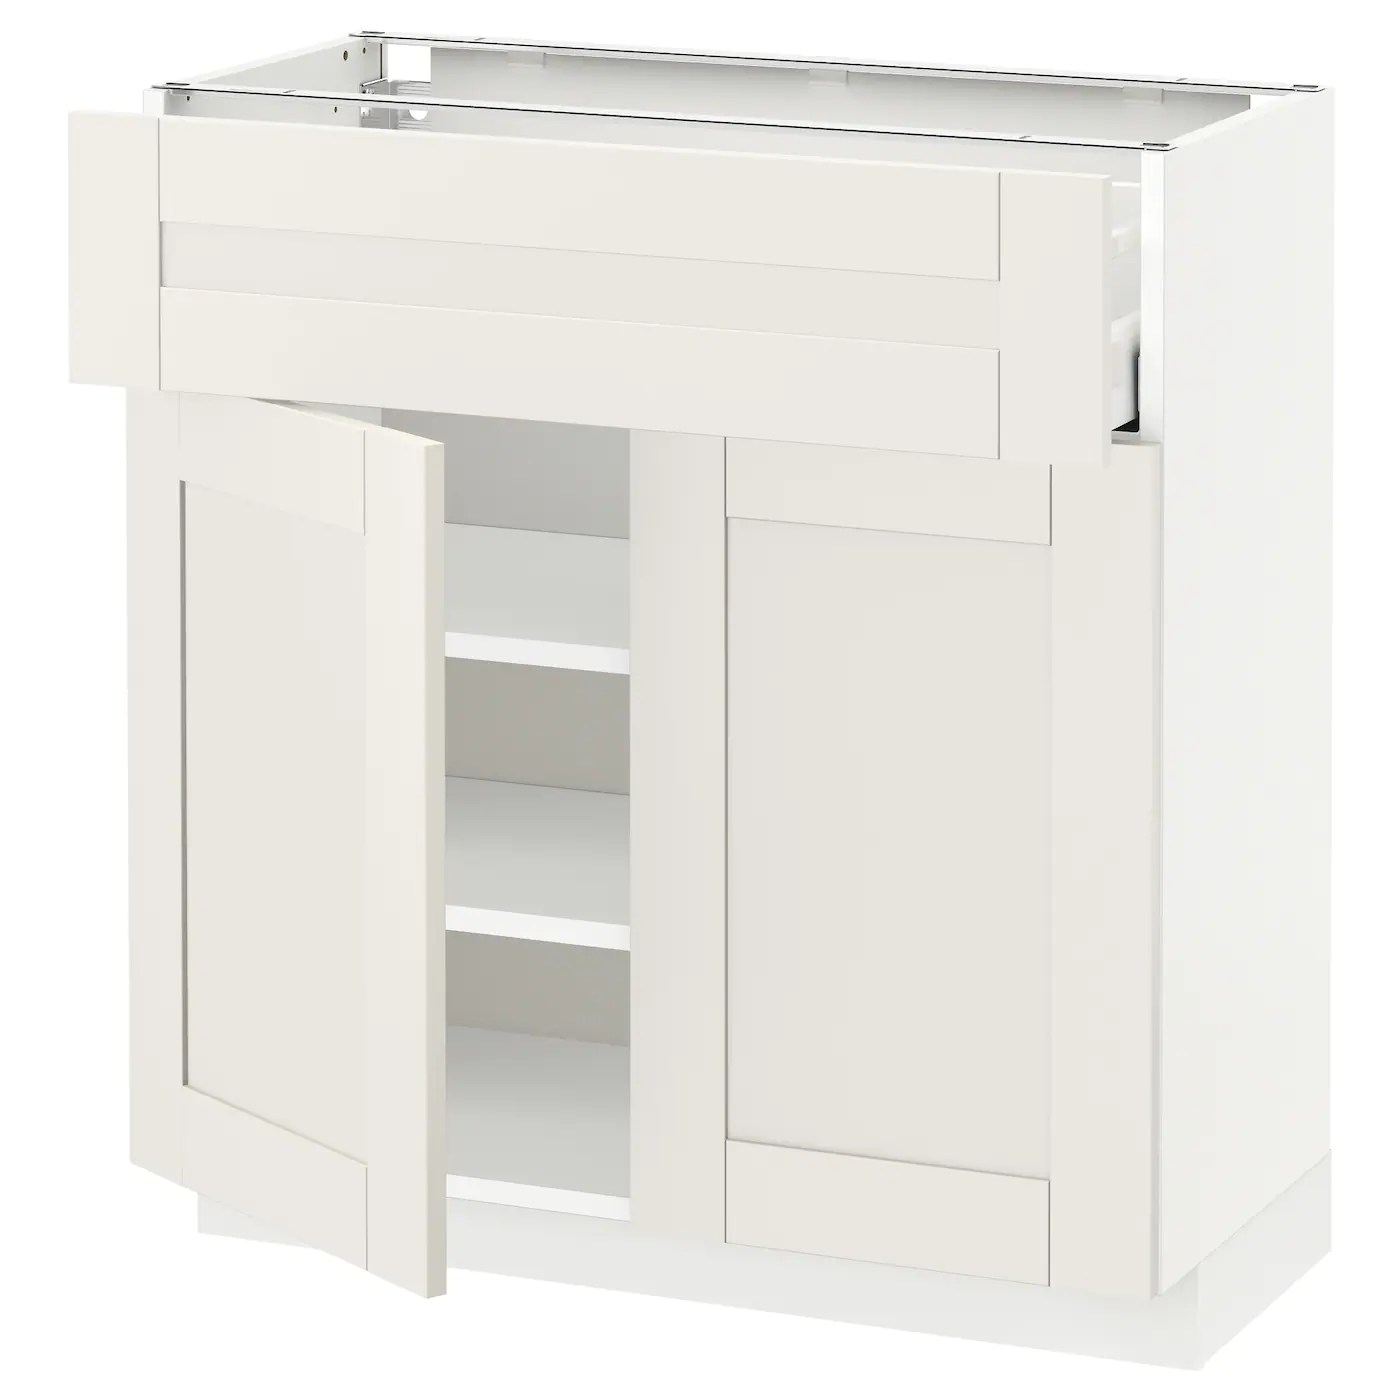 Ikea Sävedal Metod Maximera Base Cabinet With Drawer 2 Doors White Sävedal White